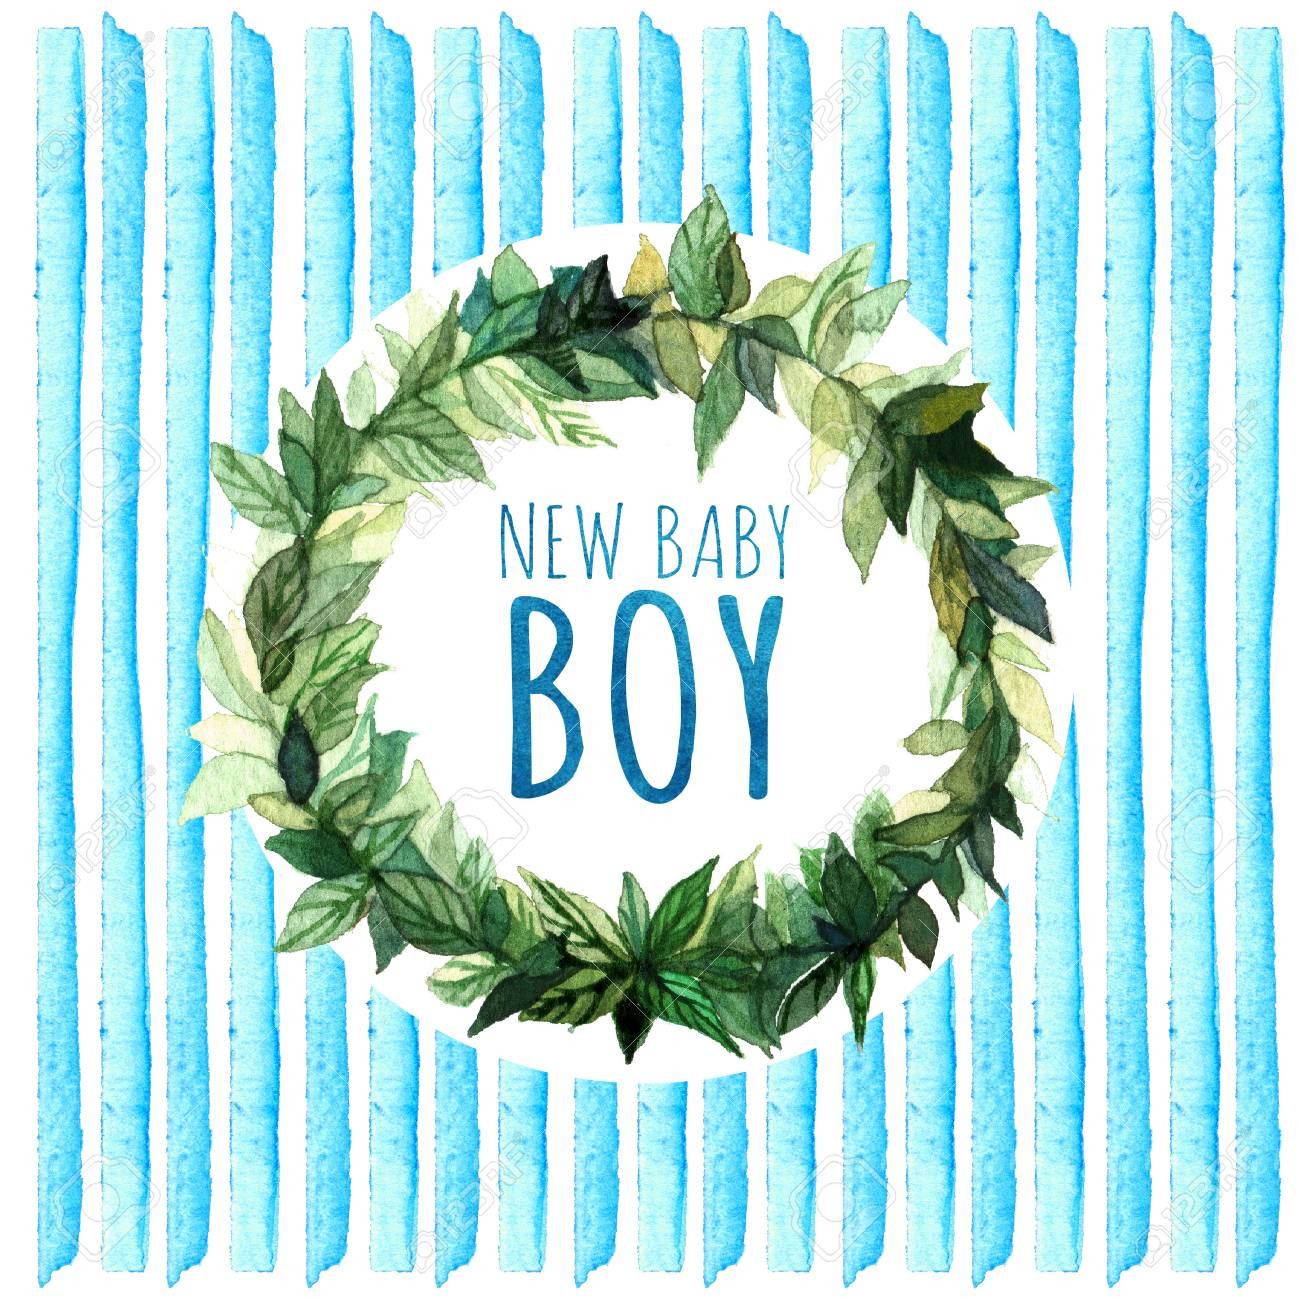 Baby Shower Invitation Card It S A Boy New Baby Boy Baby Shower Greeting Card Watercolor Creative Greeting Cards Template Element Design For